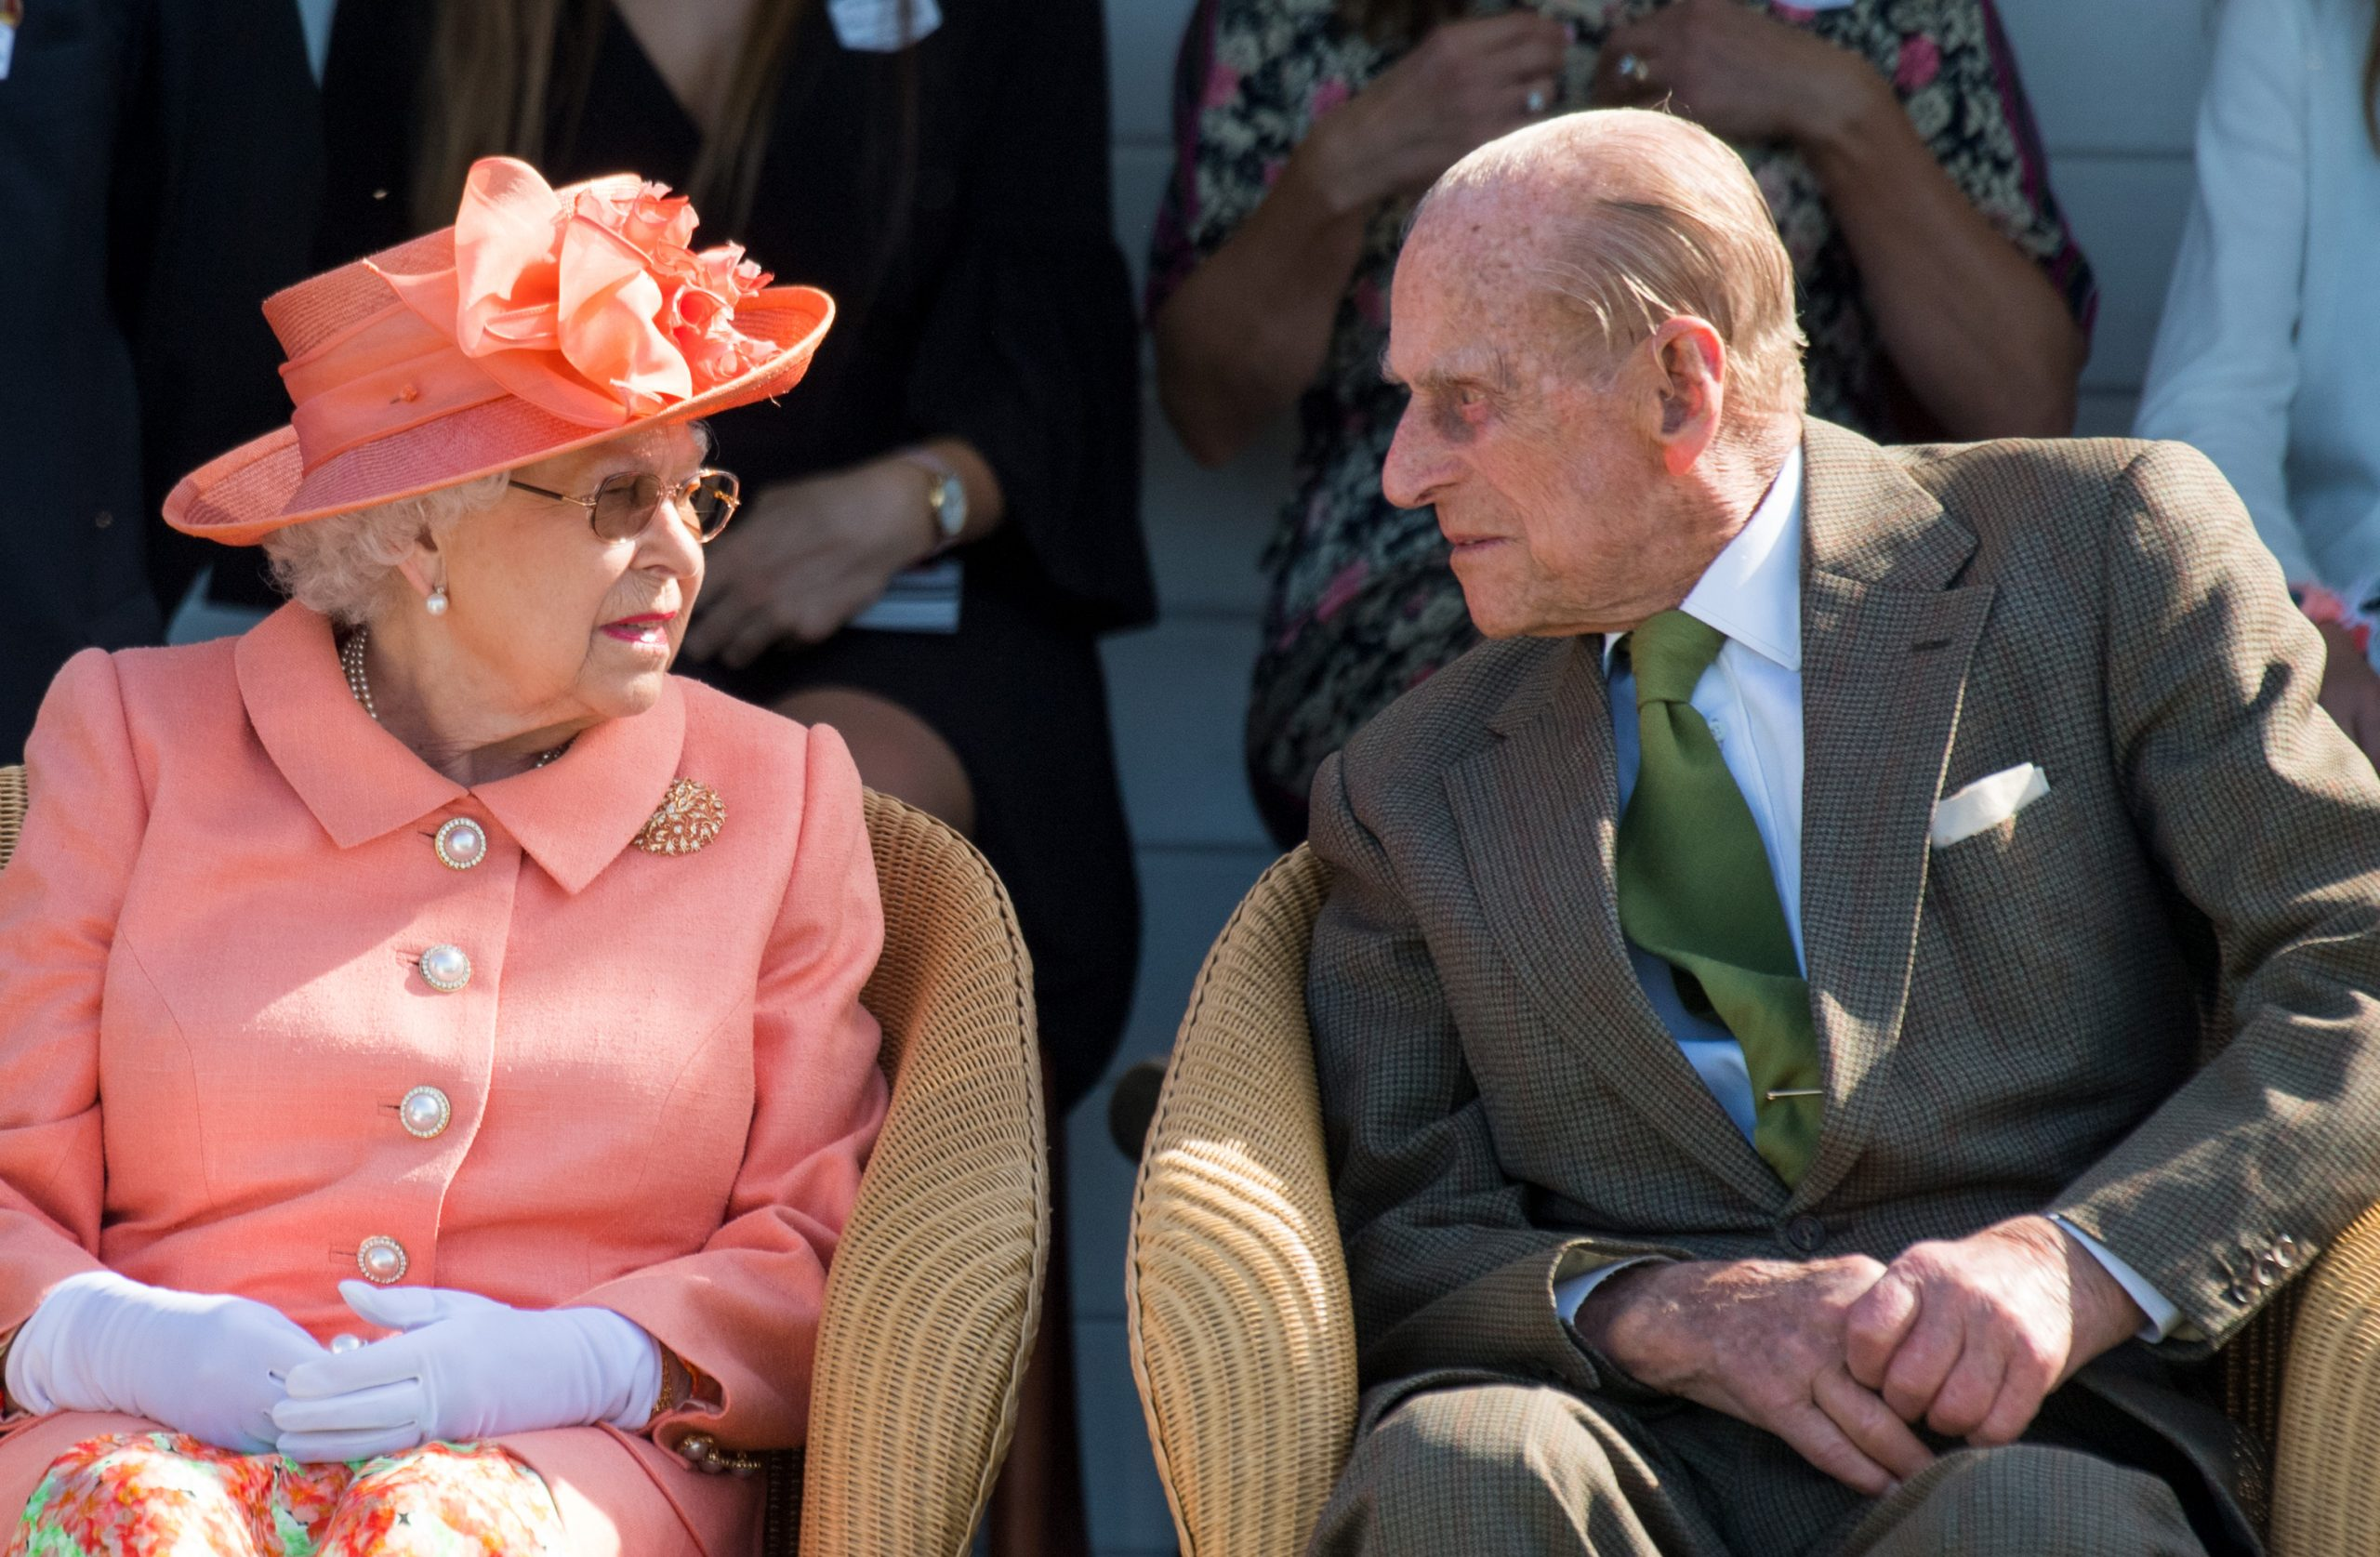 The Queen and Prince Philip, who was rumoured to have died this week